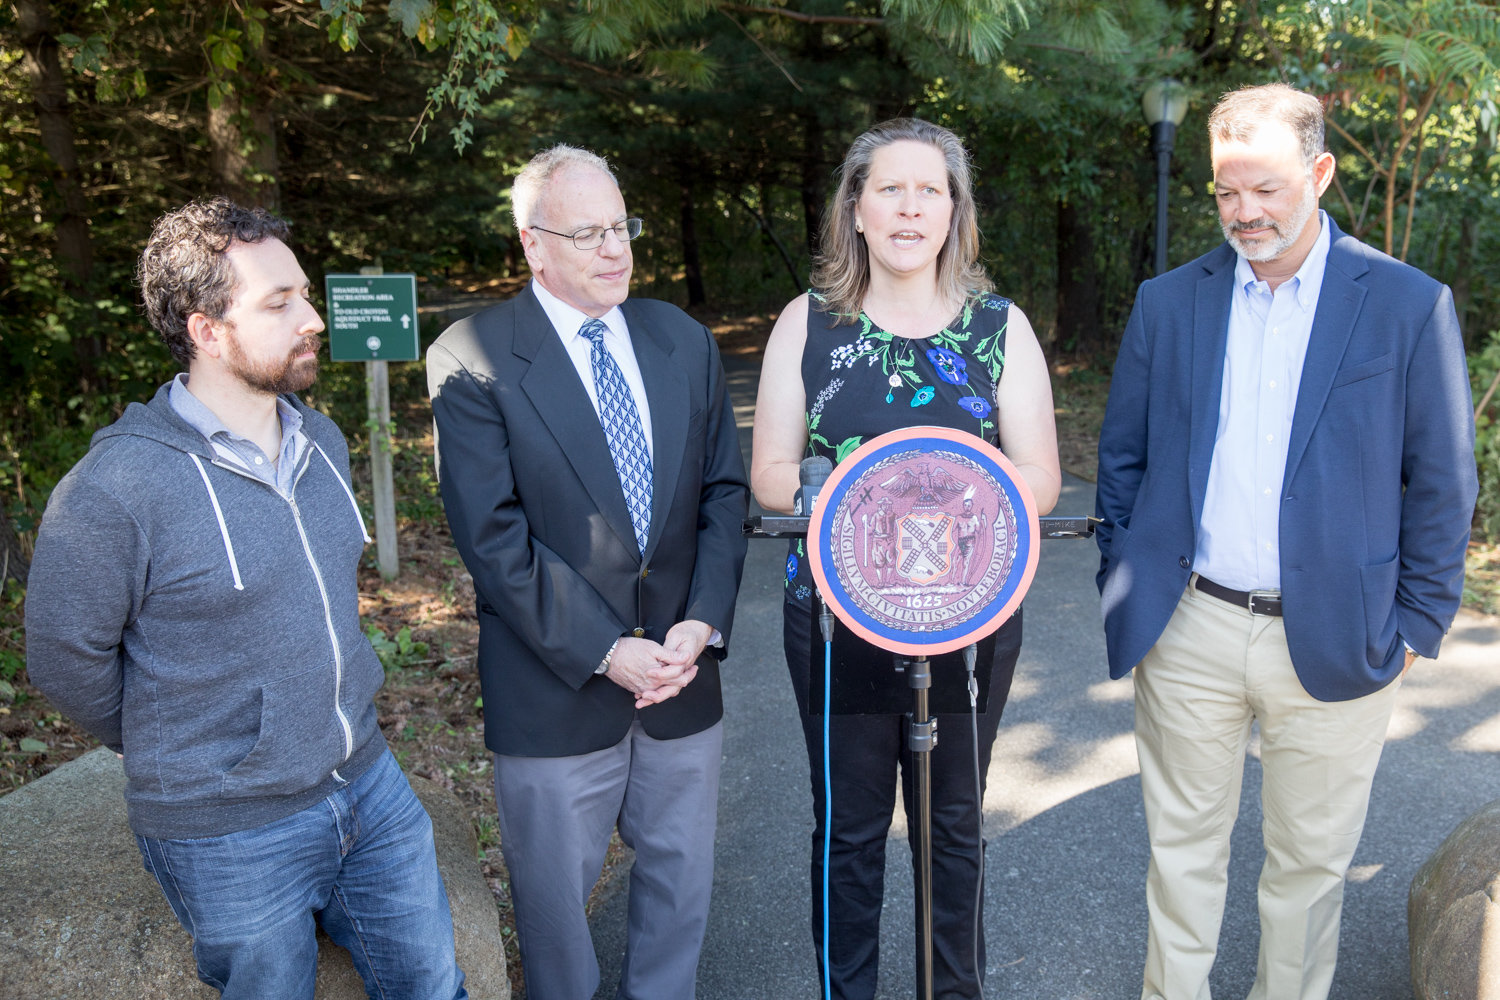 Christina Taylor, director of programs and operations at Van Cortlandt Park Alliance, is thrilled the $23.5 million needed to build a pedestrian bridge over the Major Deegan Expressway has been secured.